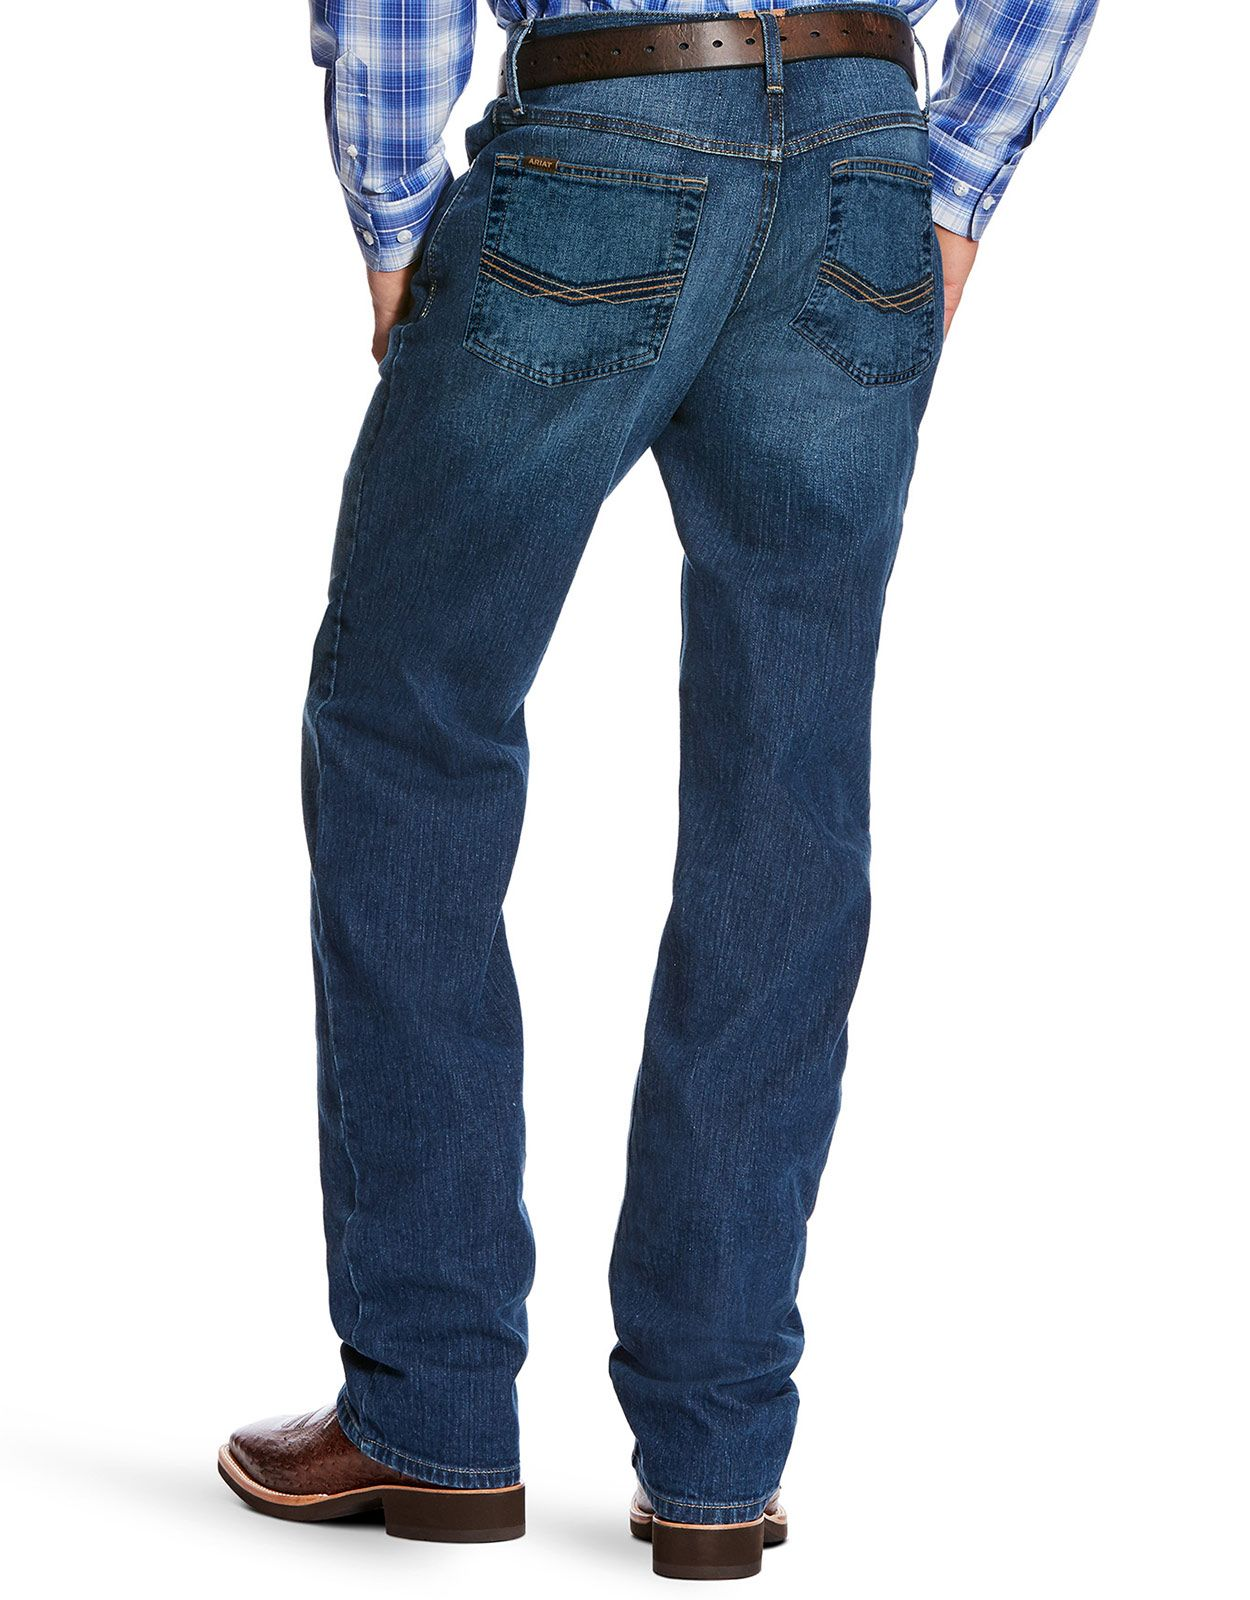 Ariat Men's M3 Legacy Stretch Low Rise Loose Fit Stackable Straight Leg Jeans - Marshall